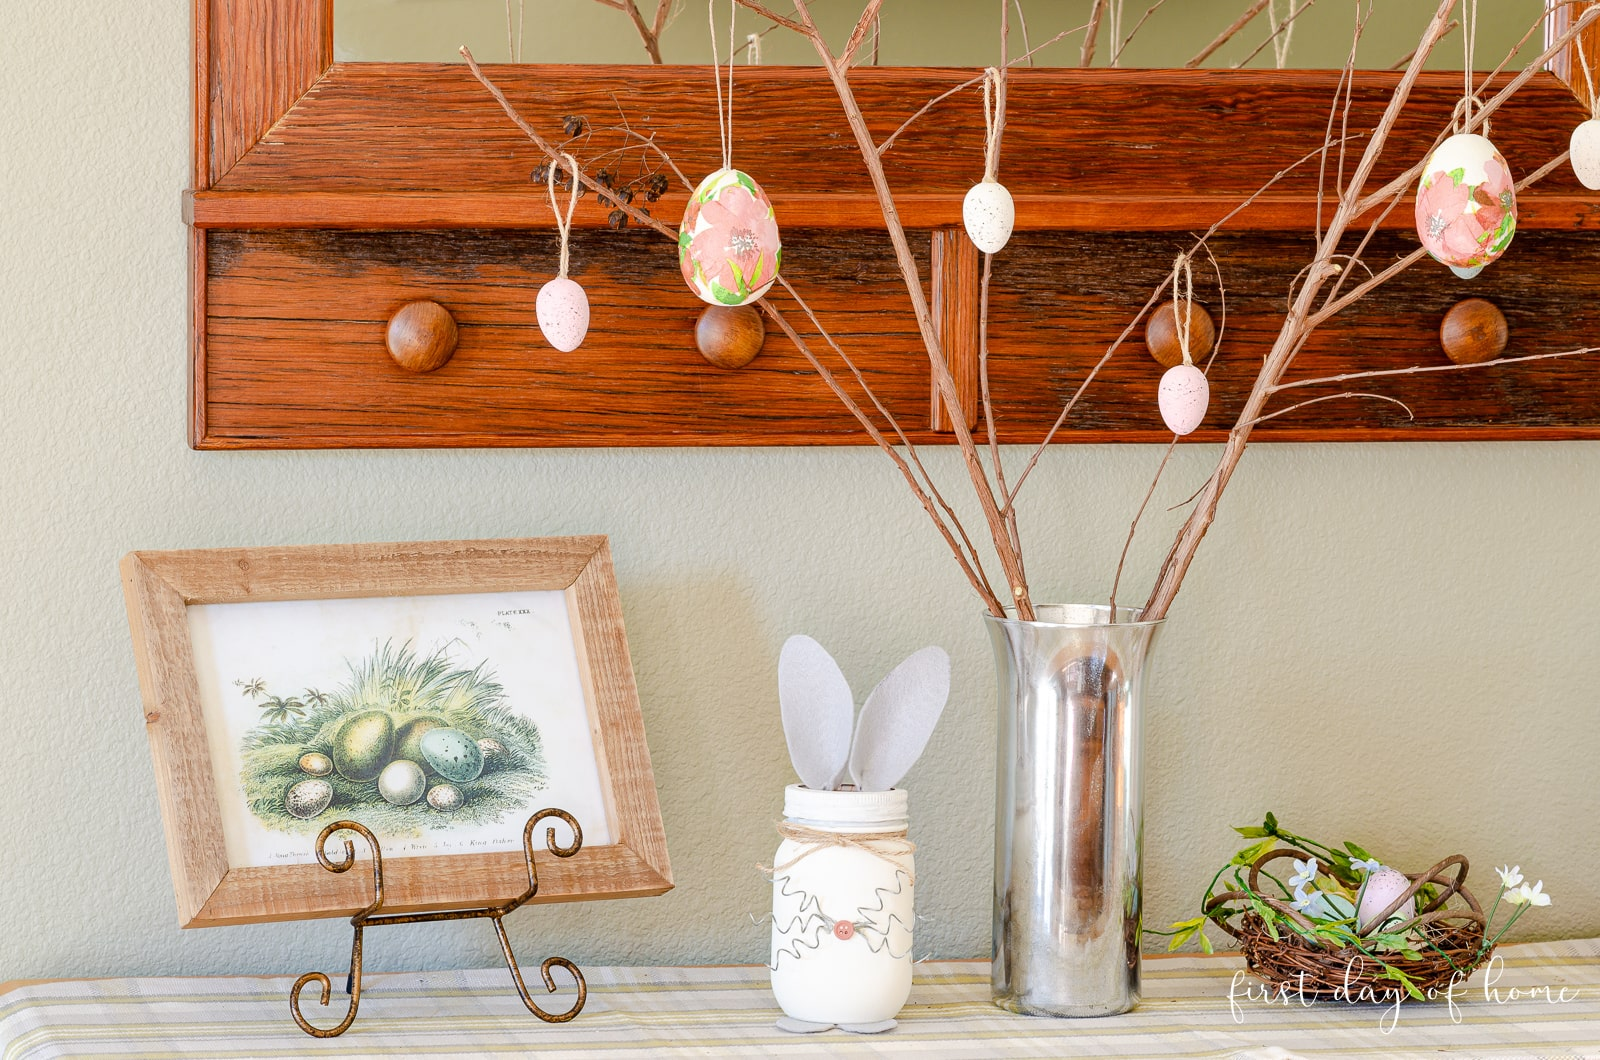 DIY Mercury glass vase with Easter tree and spring decor on buffet table